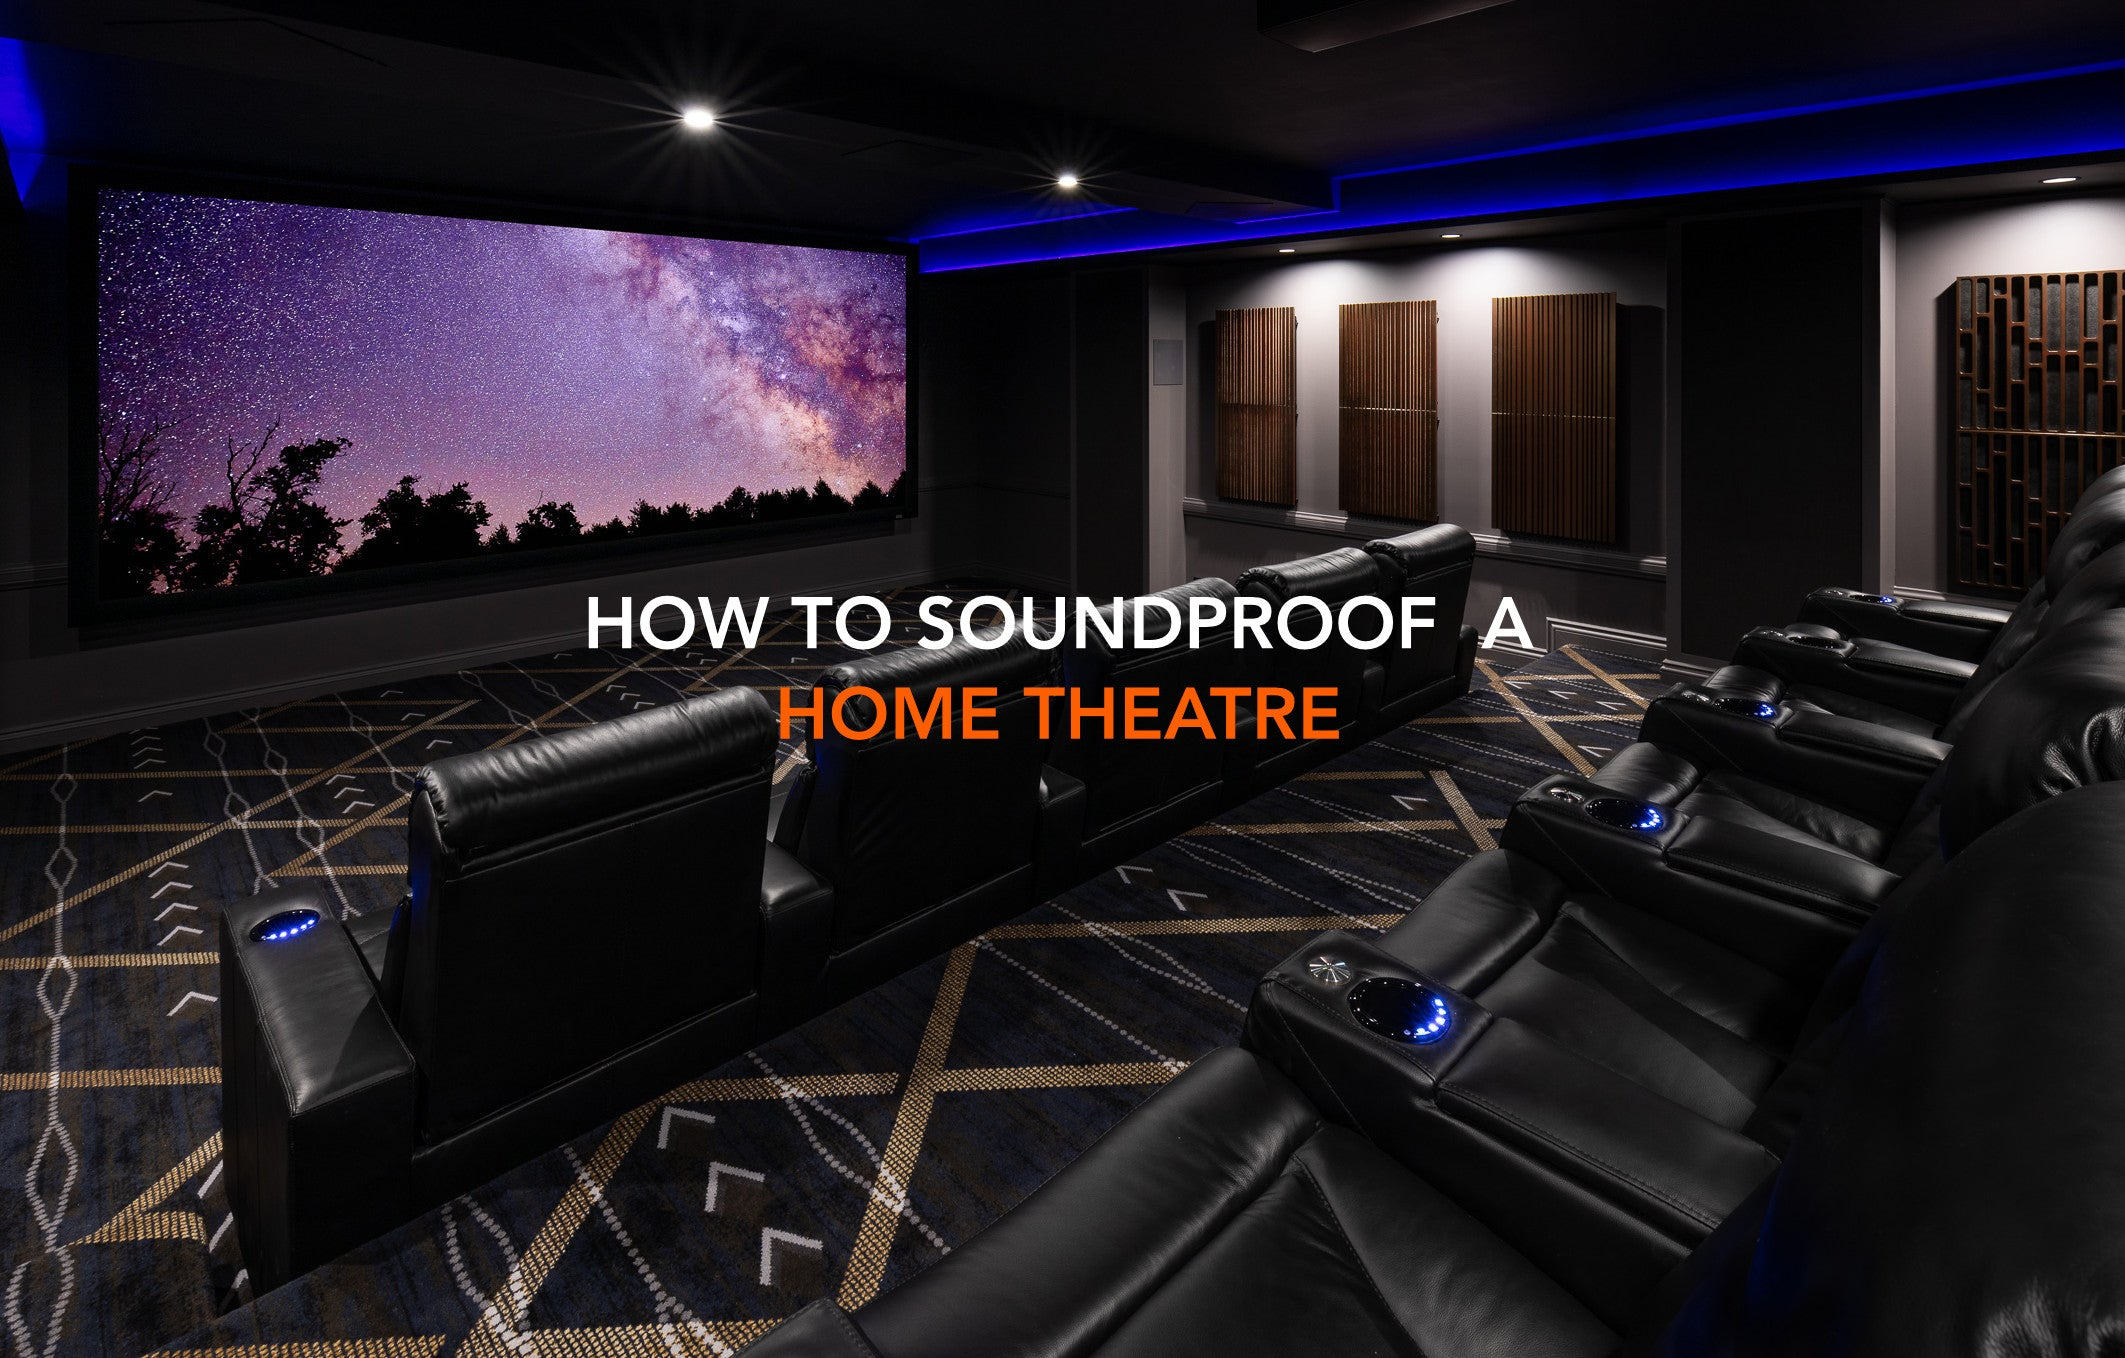 Soundproofing a Home Theatre